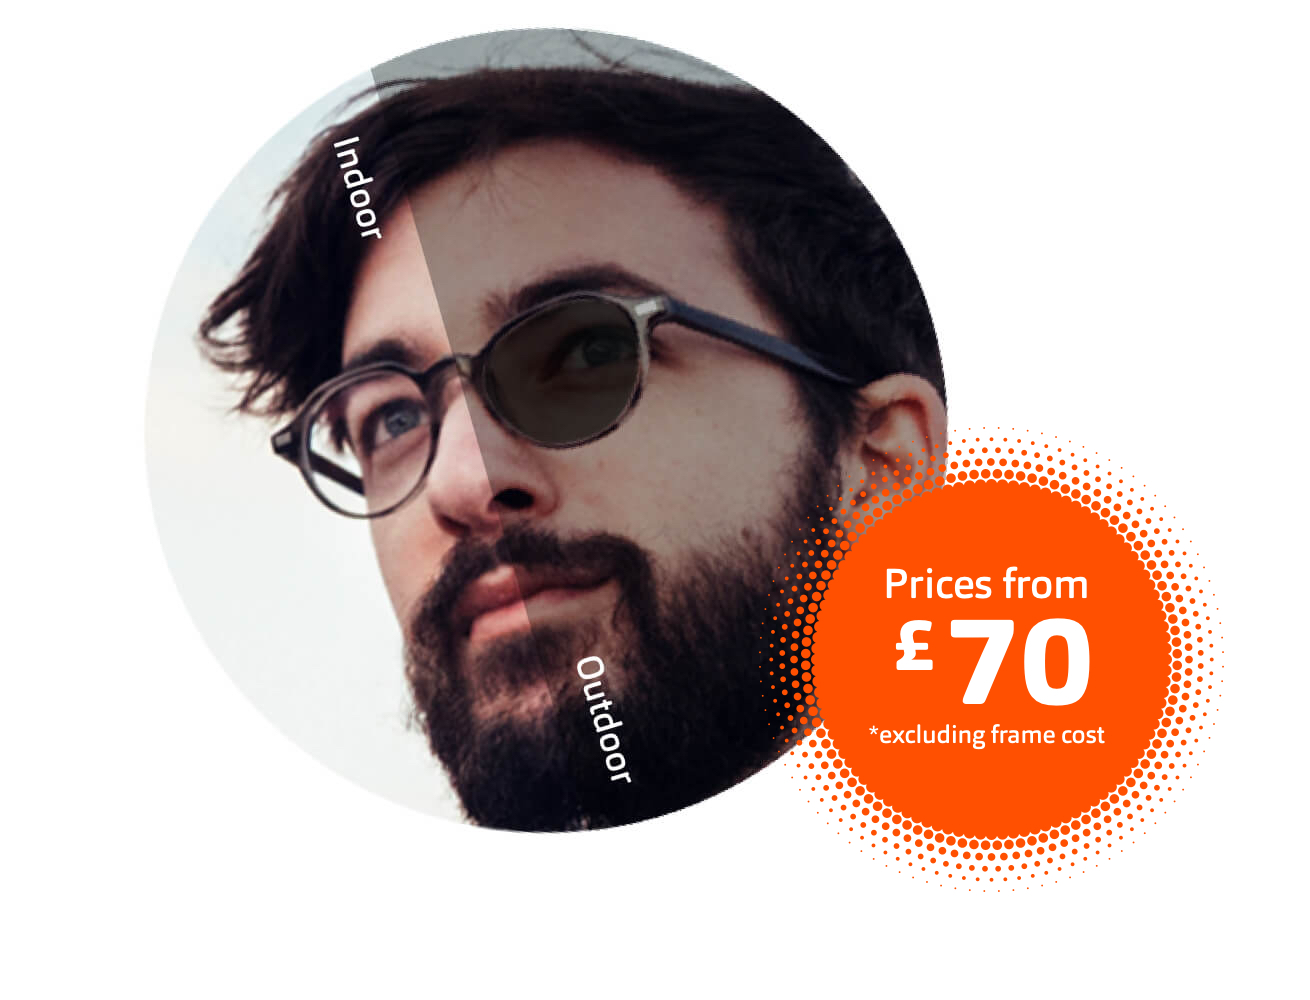 Close-up circular image of man with dark hair and beard wearing sunglasses which have adaptive lenses.